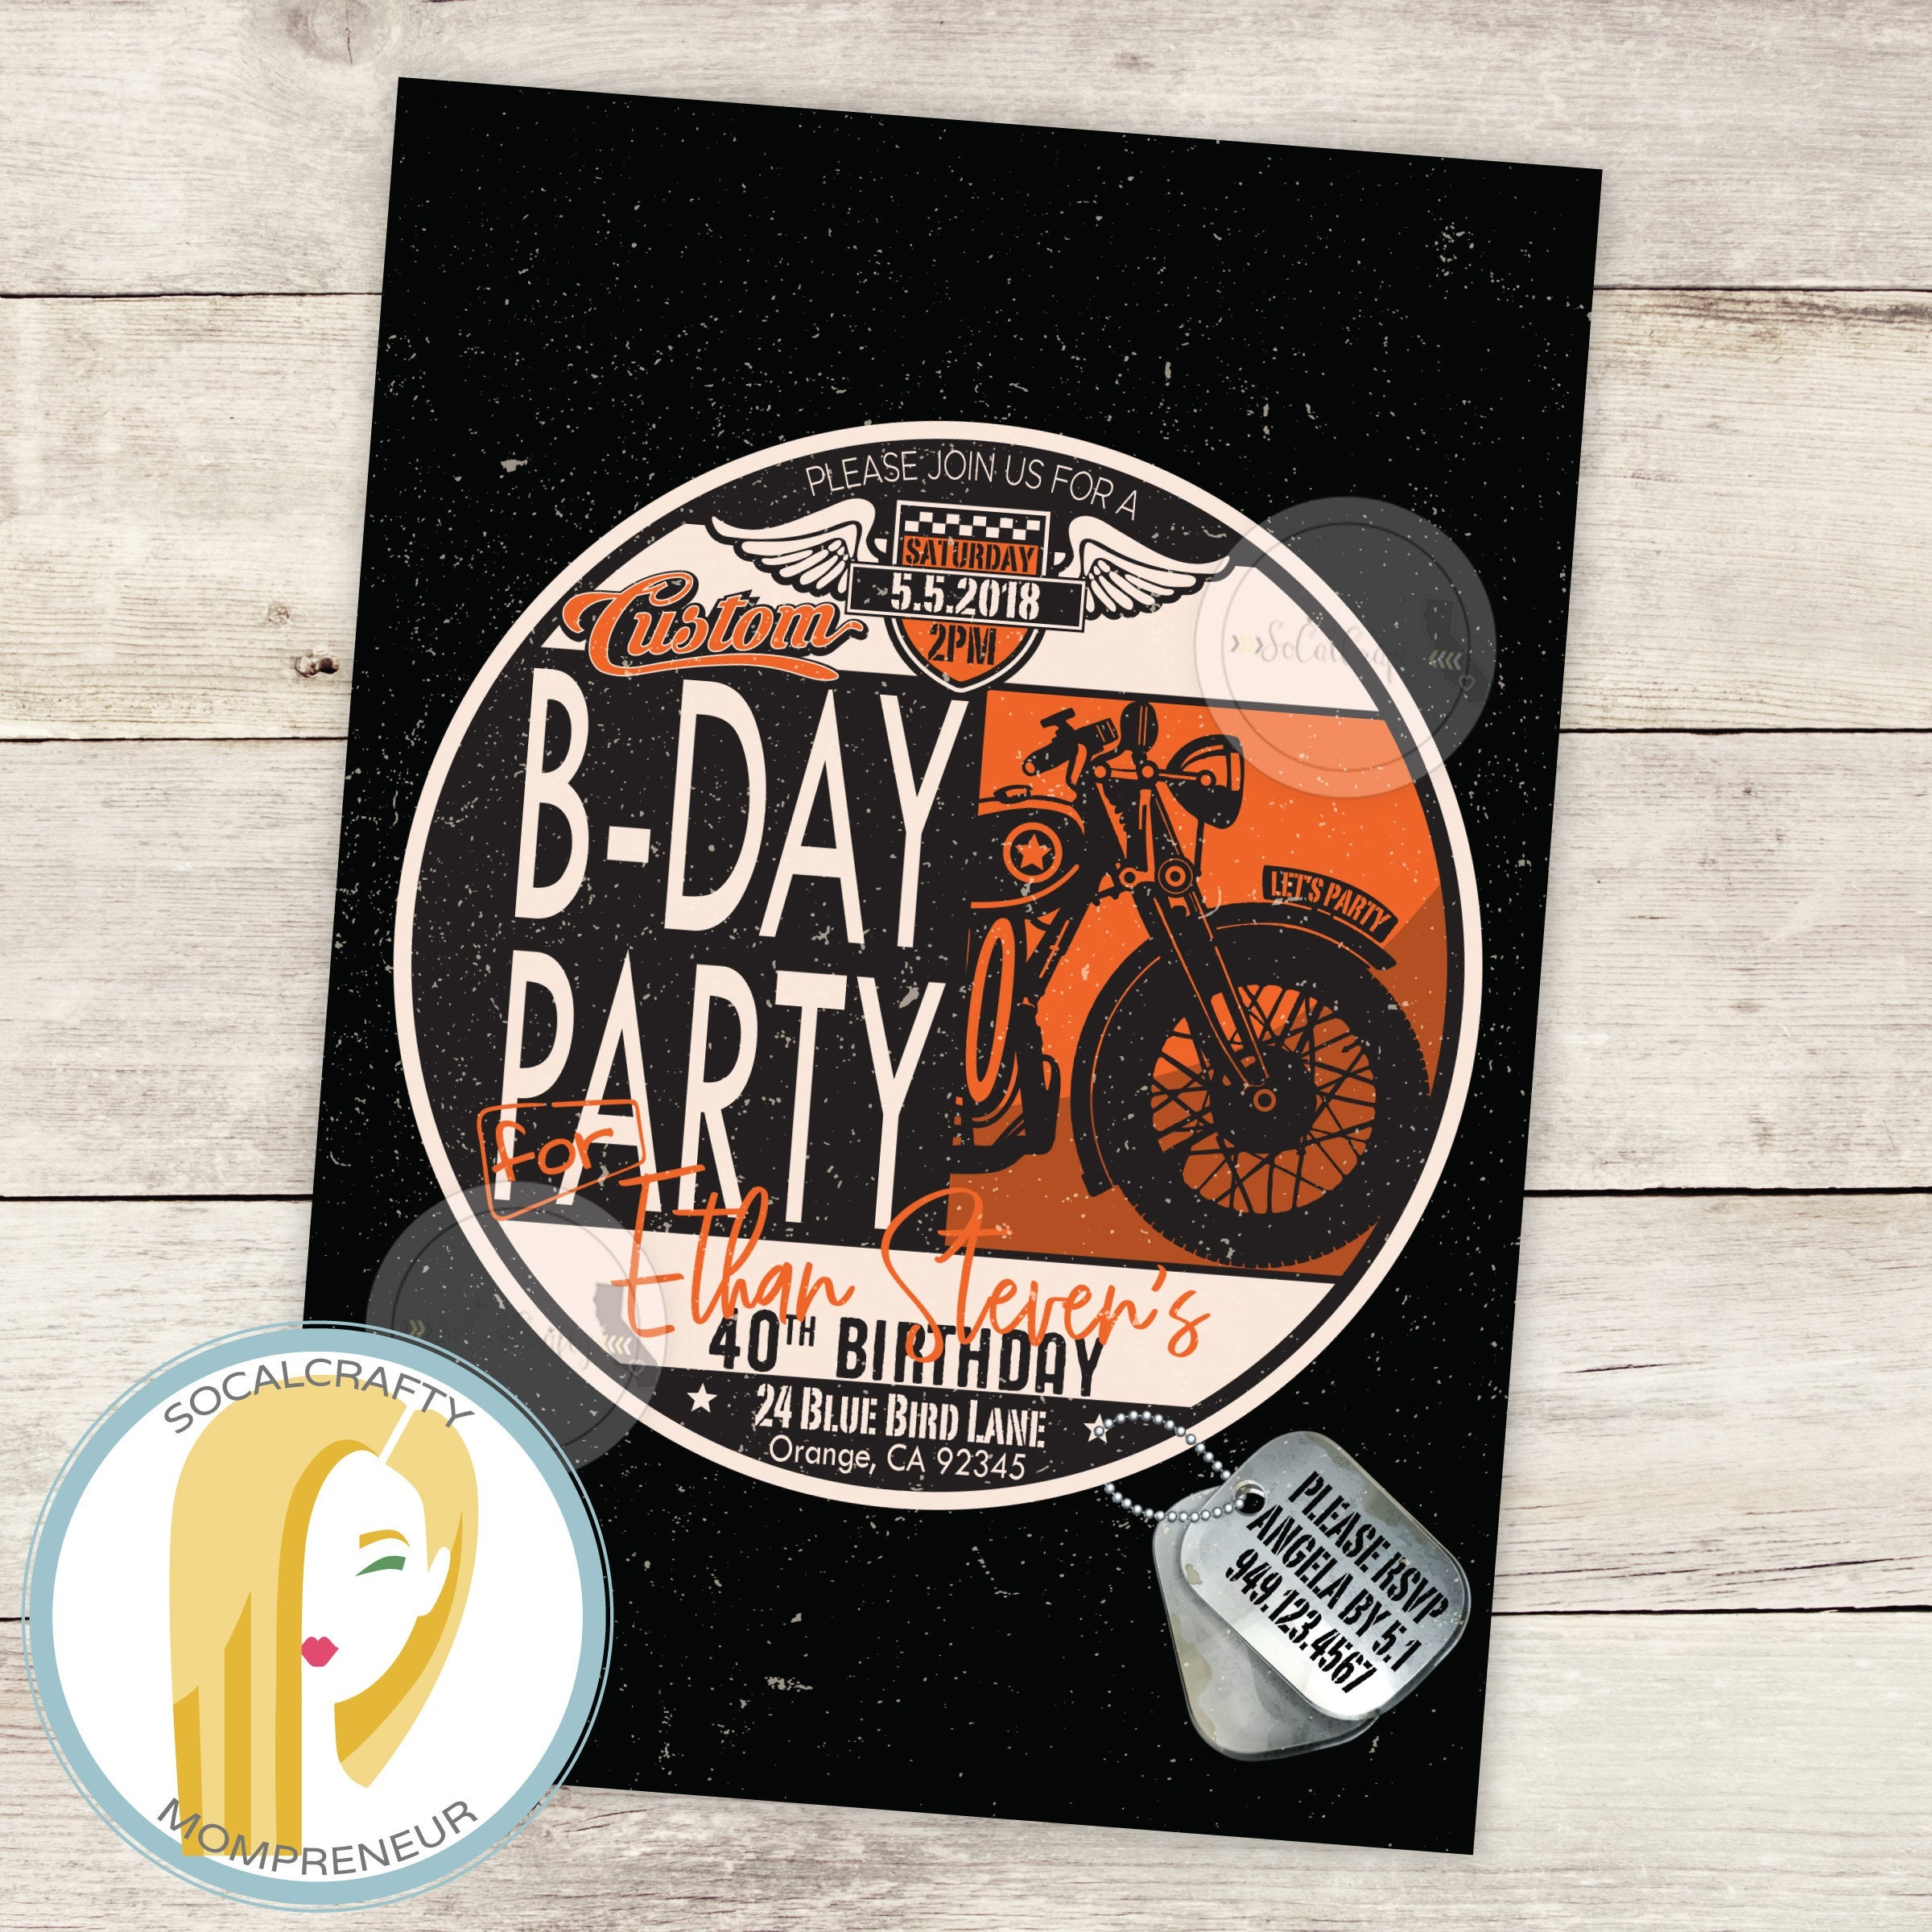 Harley Davidson Birthday Party Invitation Motorcycle | Etsy - Motorcycle Invitations Free Printable